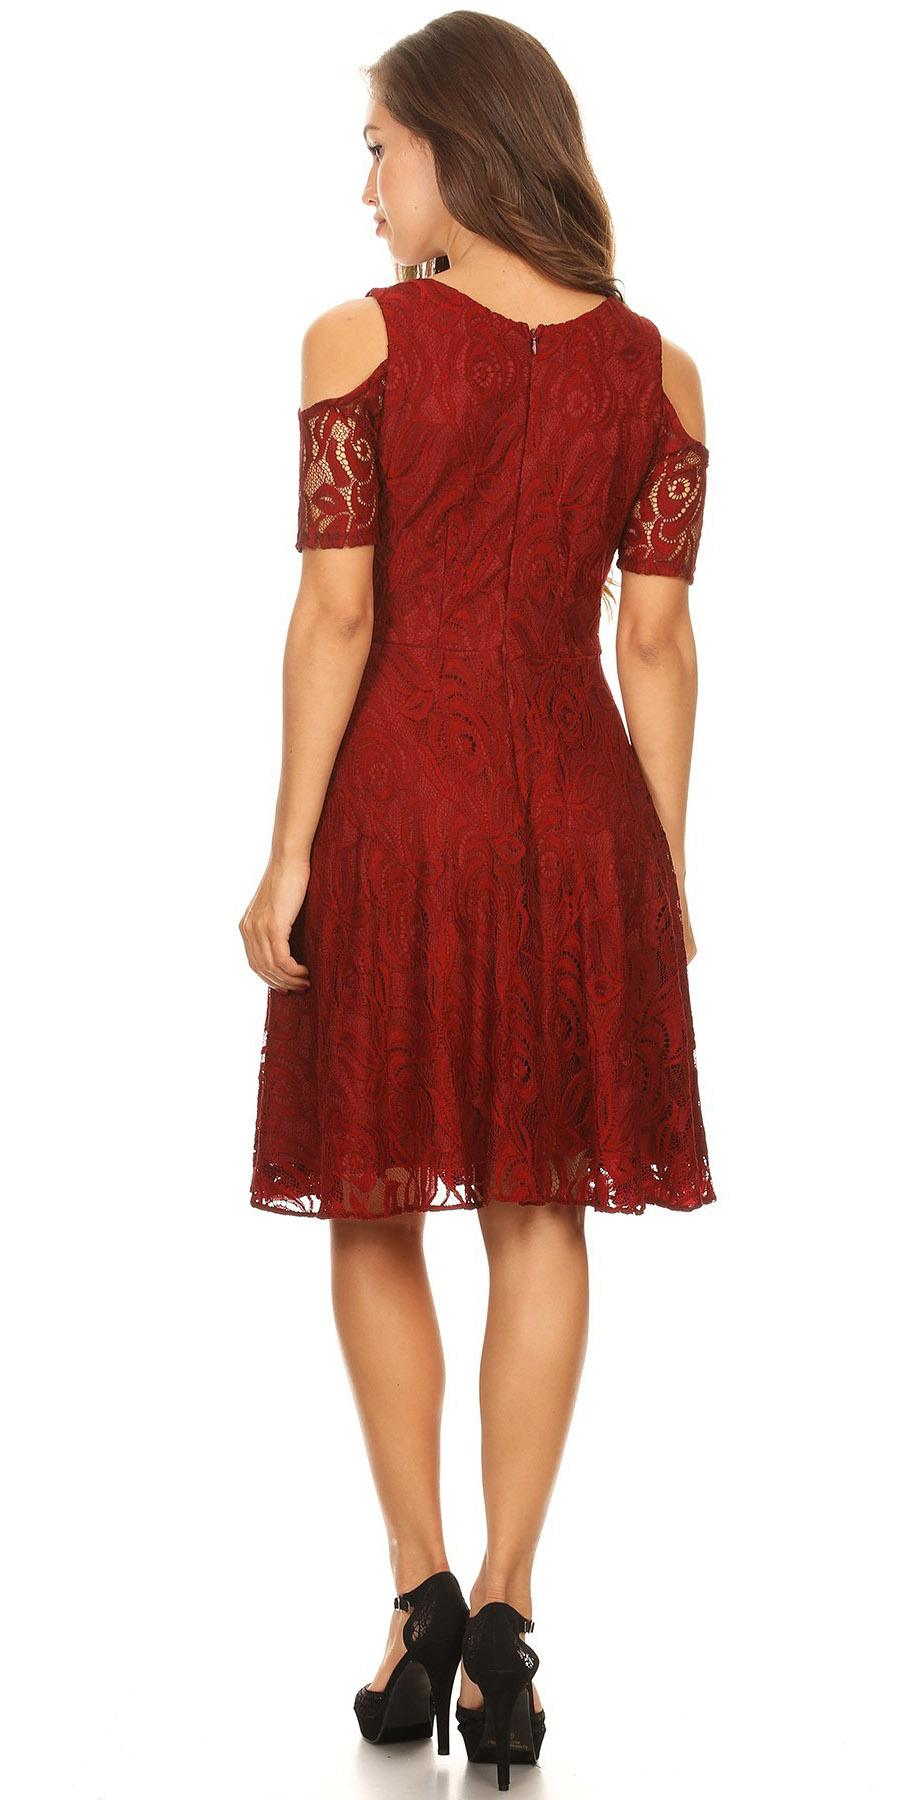 53db956b26a Burgundy Lace A-Line Wedding Guest Dress Cold Shoulder Short Sleeves. Celavie  6307 ...